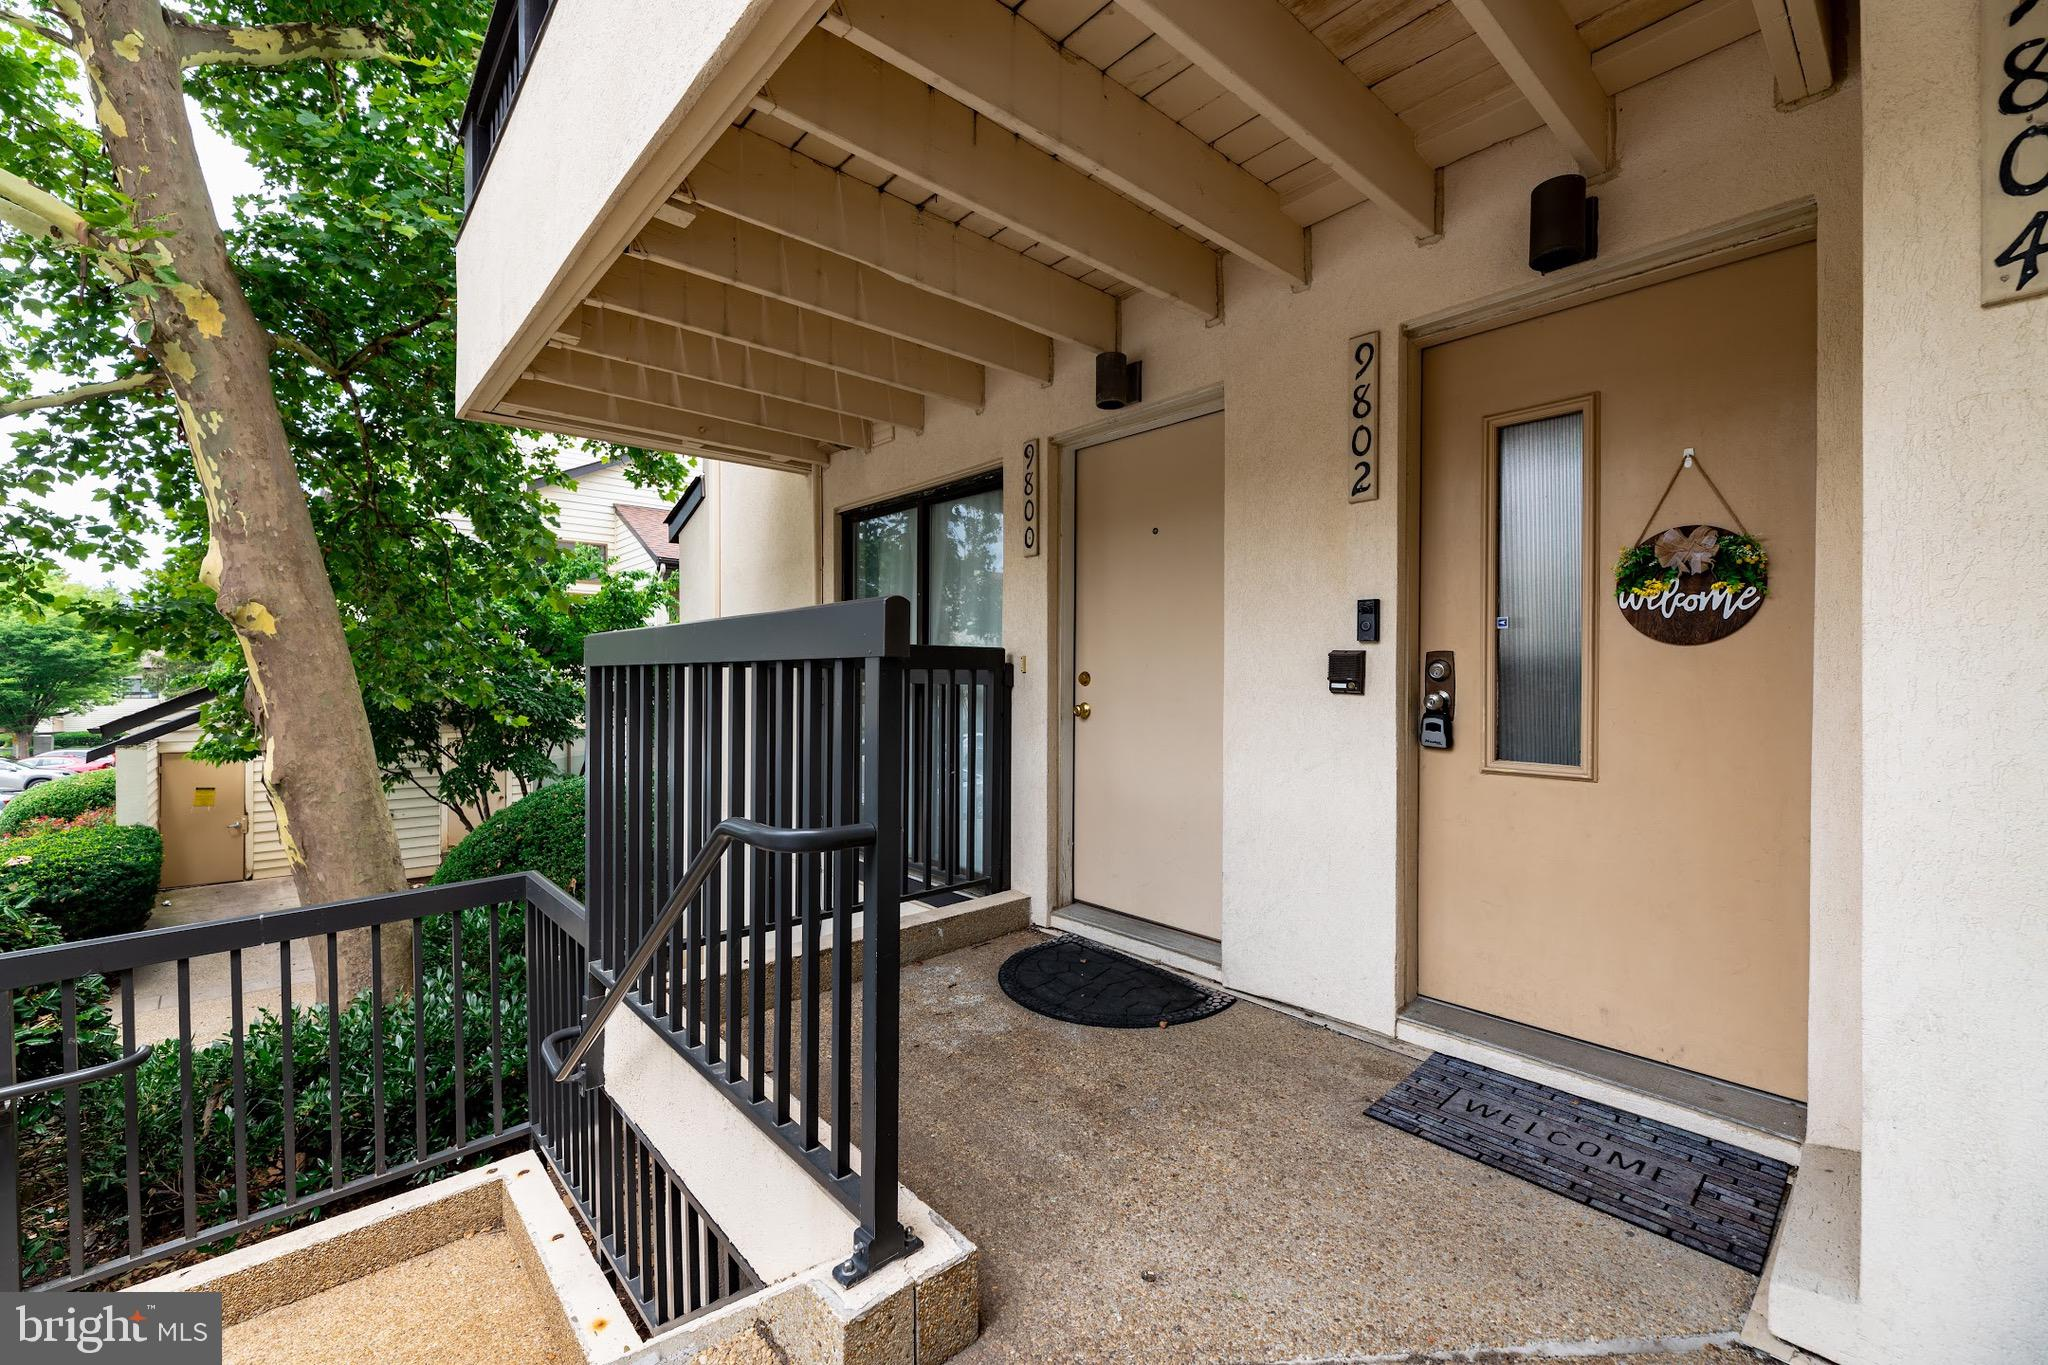 Welcome to this townhome style condo! Sun-filled, 2 bedroom, 1 bath home, corner unit. Open concept